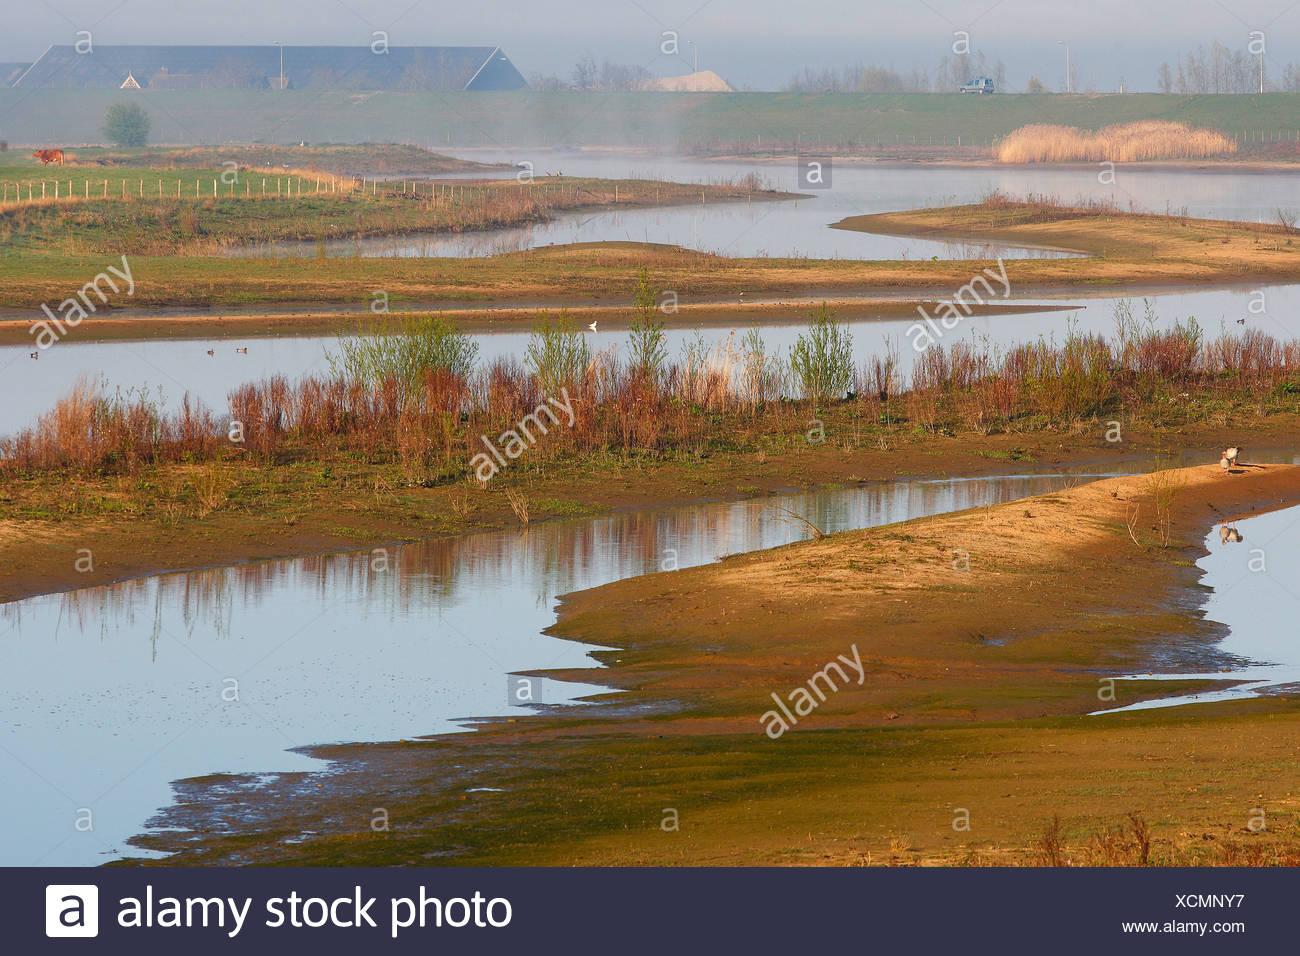 Waal river scenery, Netherlands, South Holland, Lexmond Stock Photo